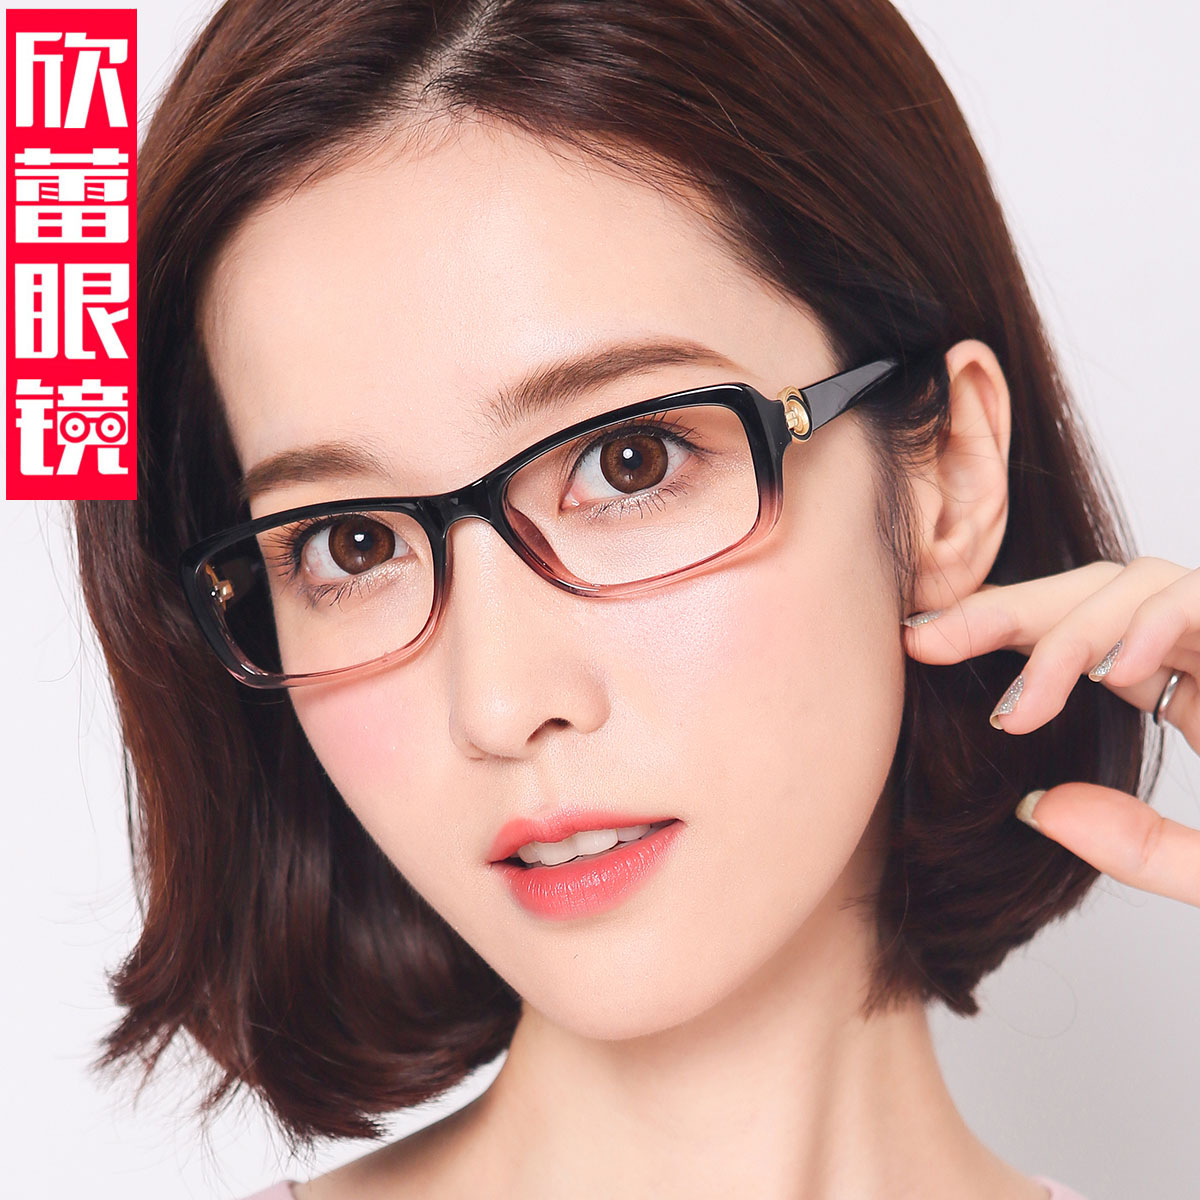 22b891dc531 Myopia glasses female face full frame tr90 flat light anti-blue glasses  frame myopia female models can be equipped with color elegant